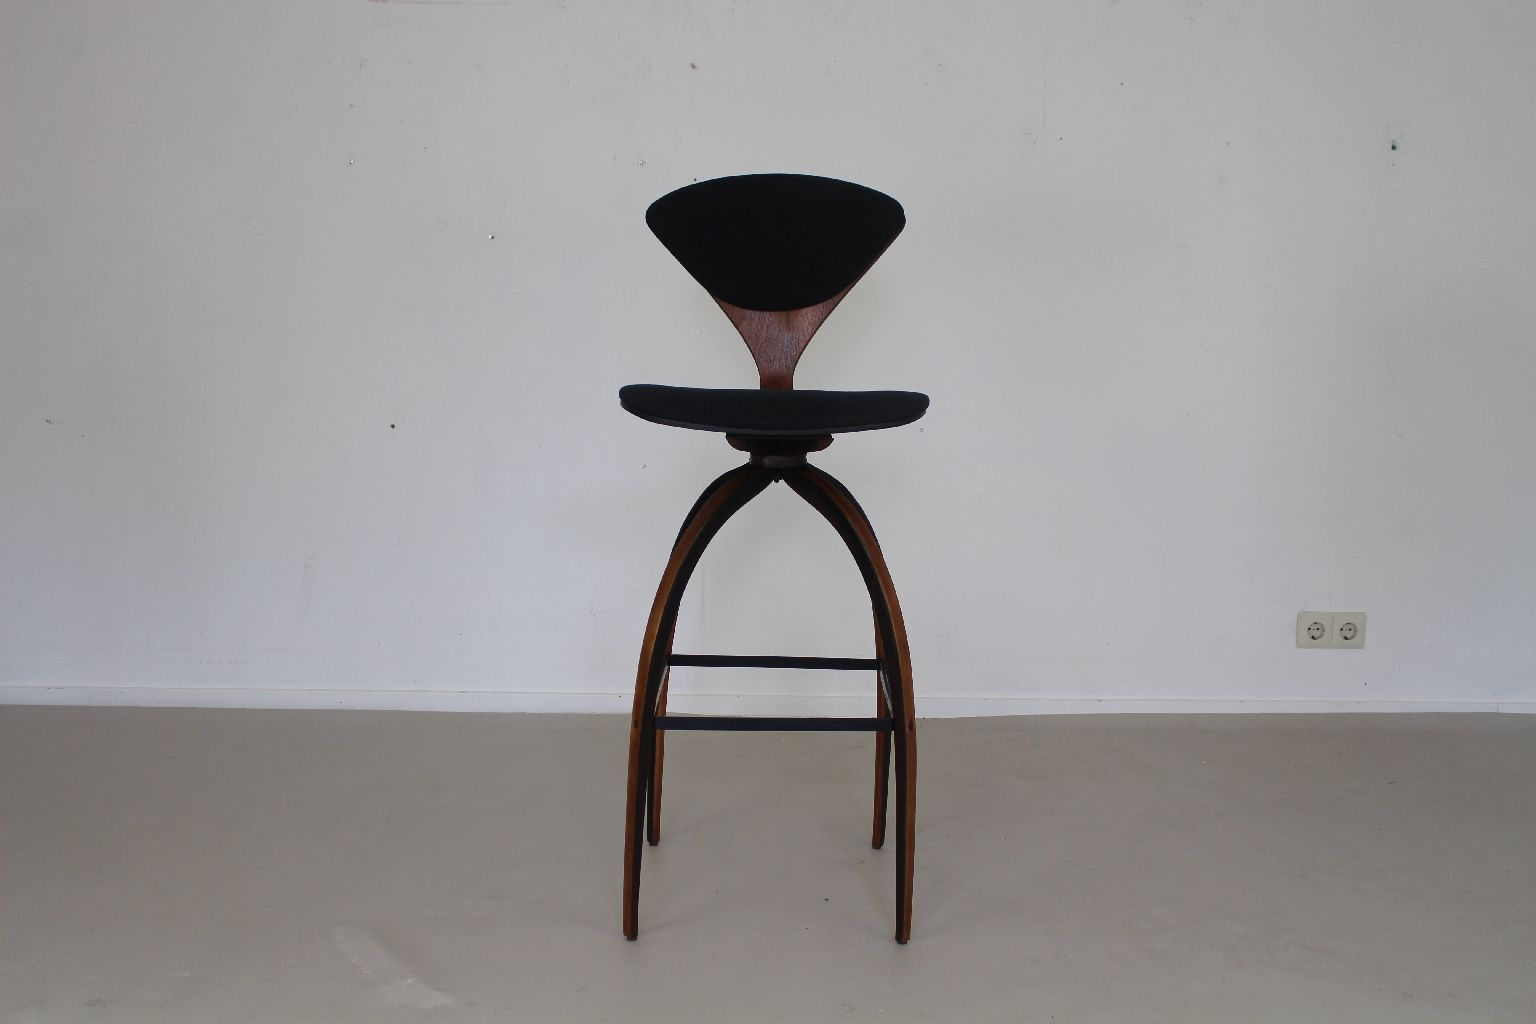 Plywood barstool by norman cherner for plycraft 1965 for sale at pamono - Norman cherner barstool ...